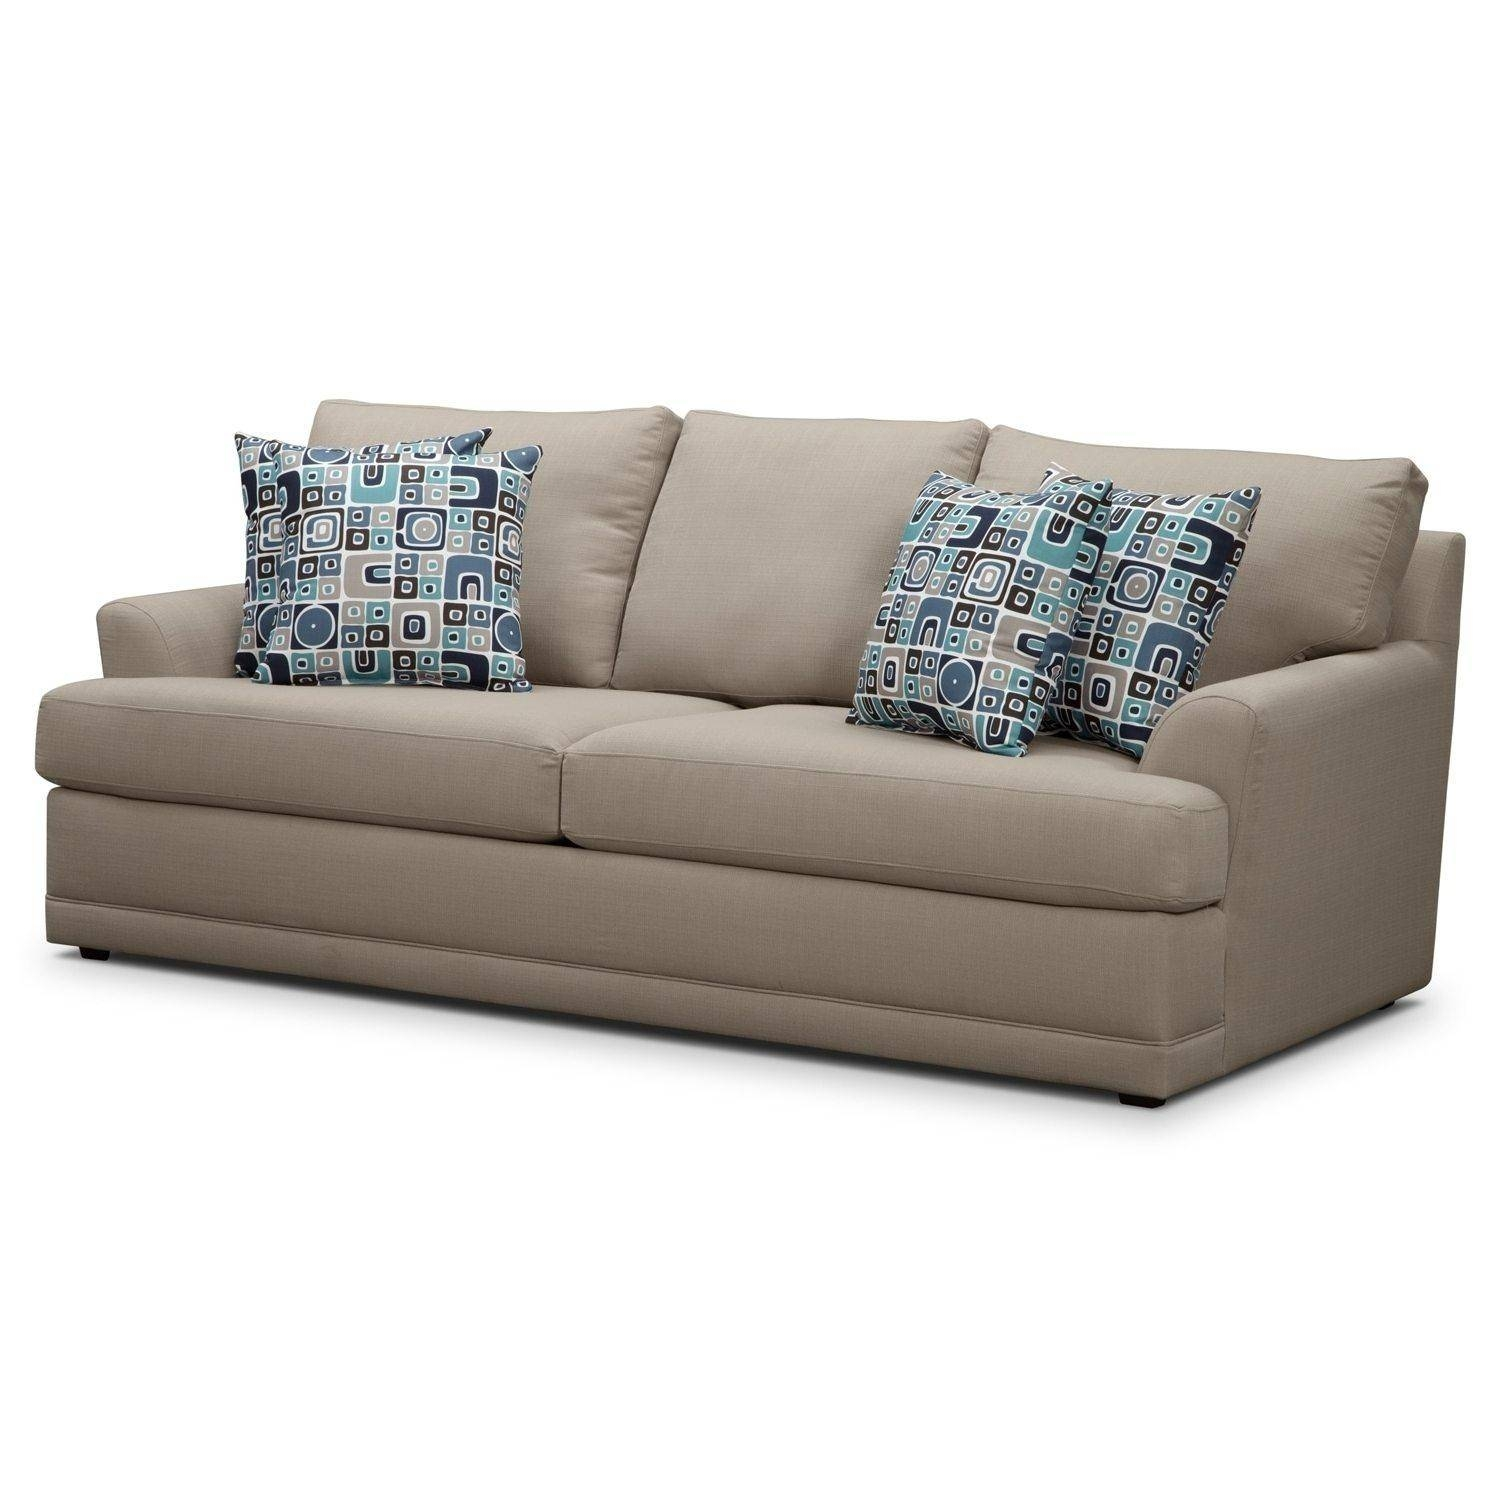 20 Collection Of Davis Sleeper Sofas | Sofa Ideas pertaining to Davis Sleeper Sofas (Image 4 of 15)